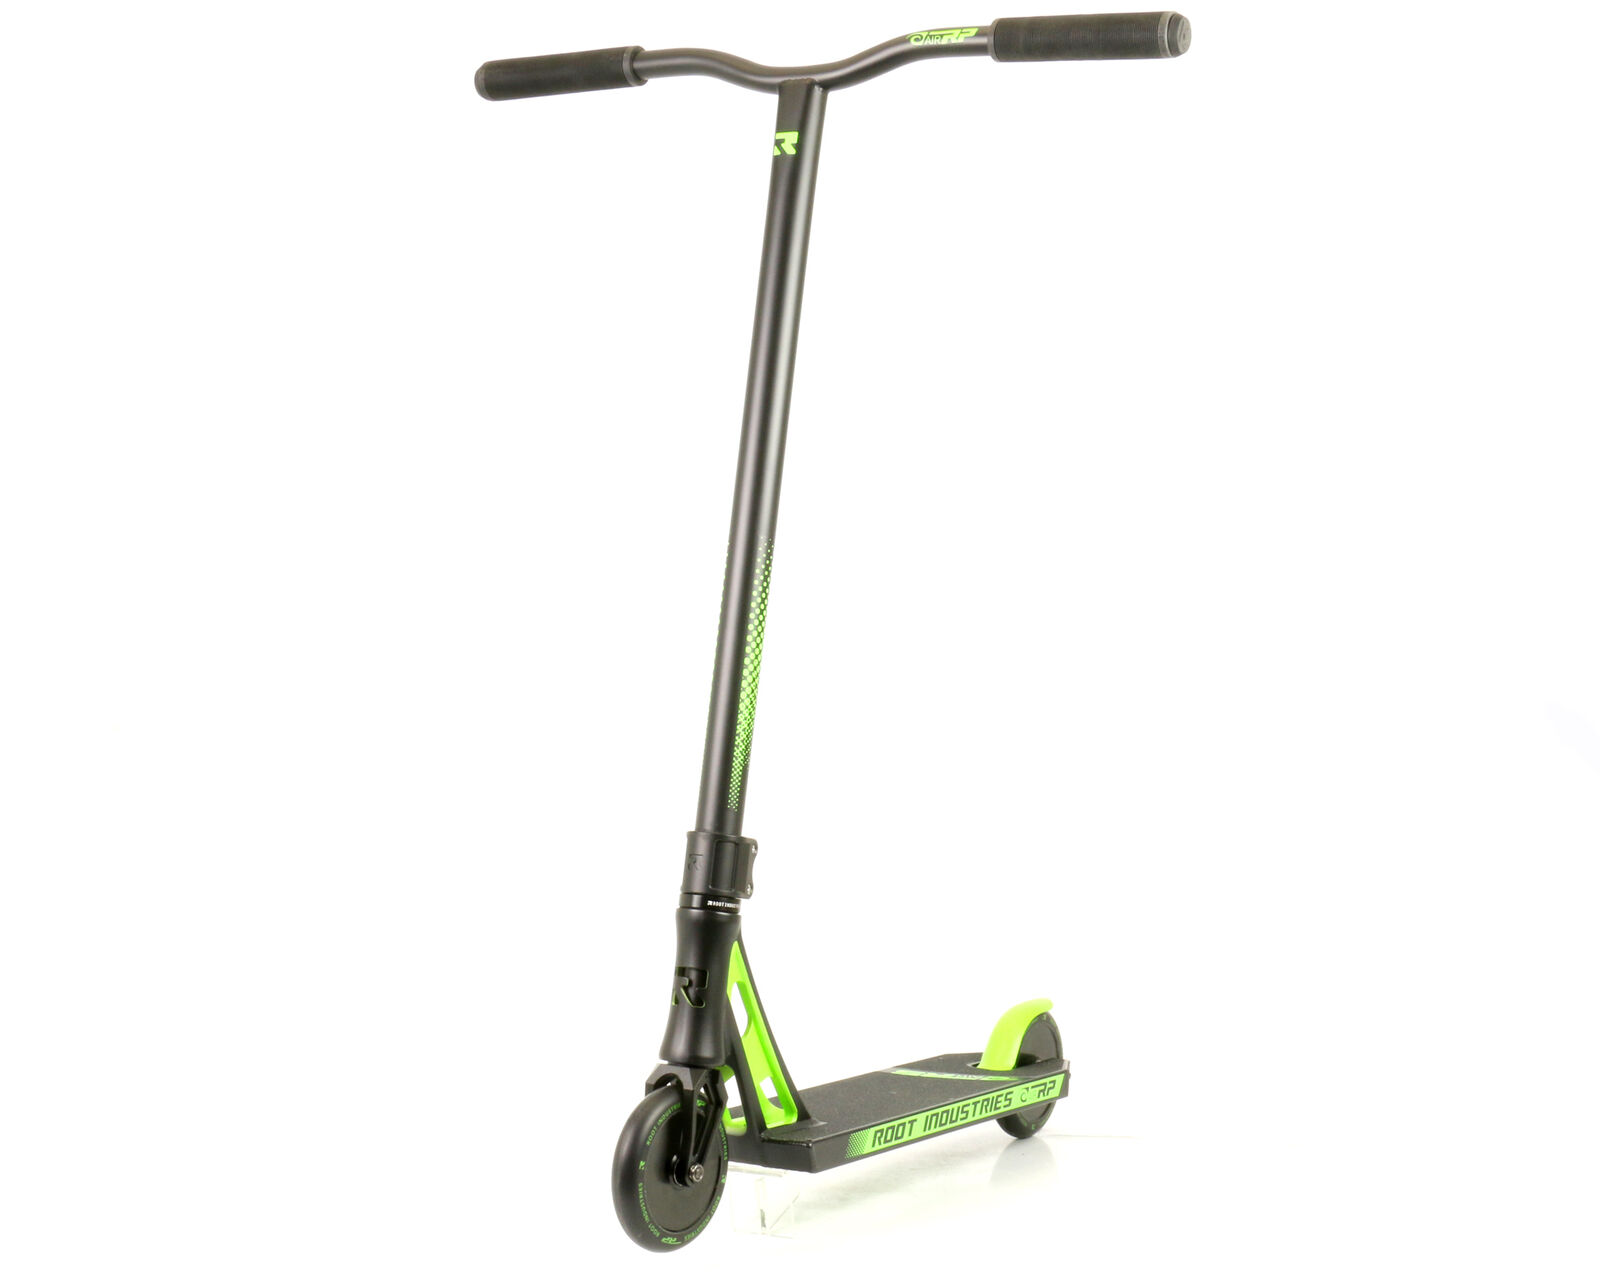 Root Industries AIR RP Complete Stunt Scooter - Green